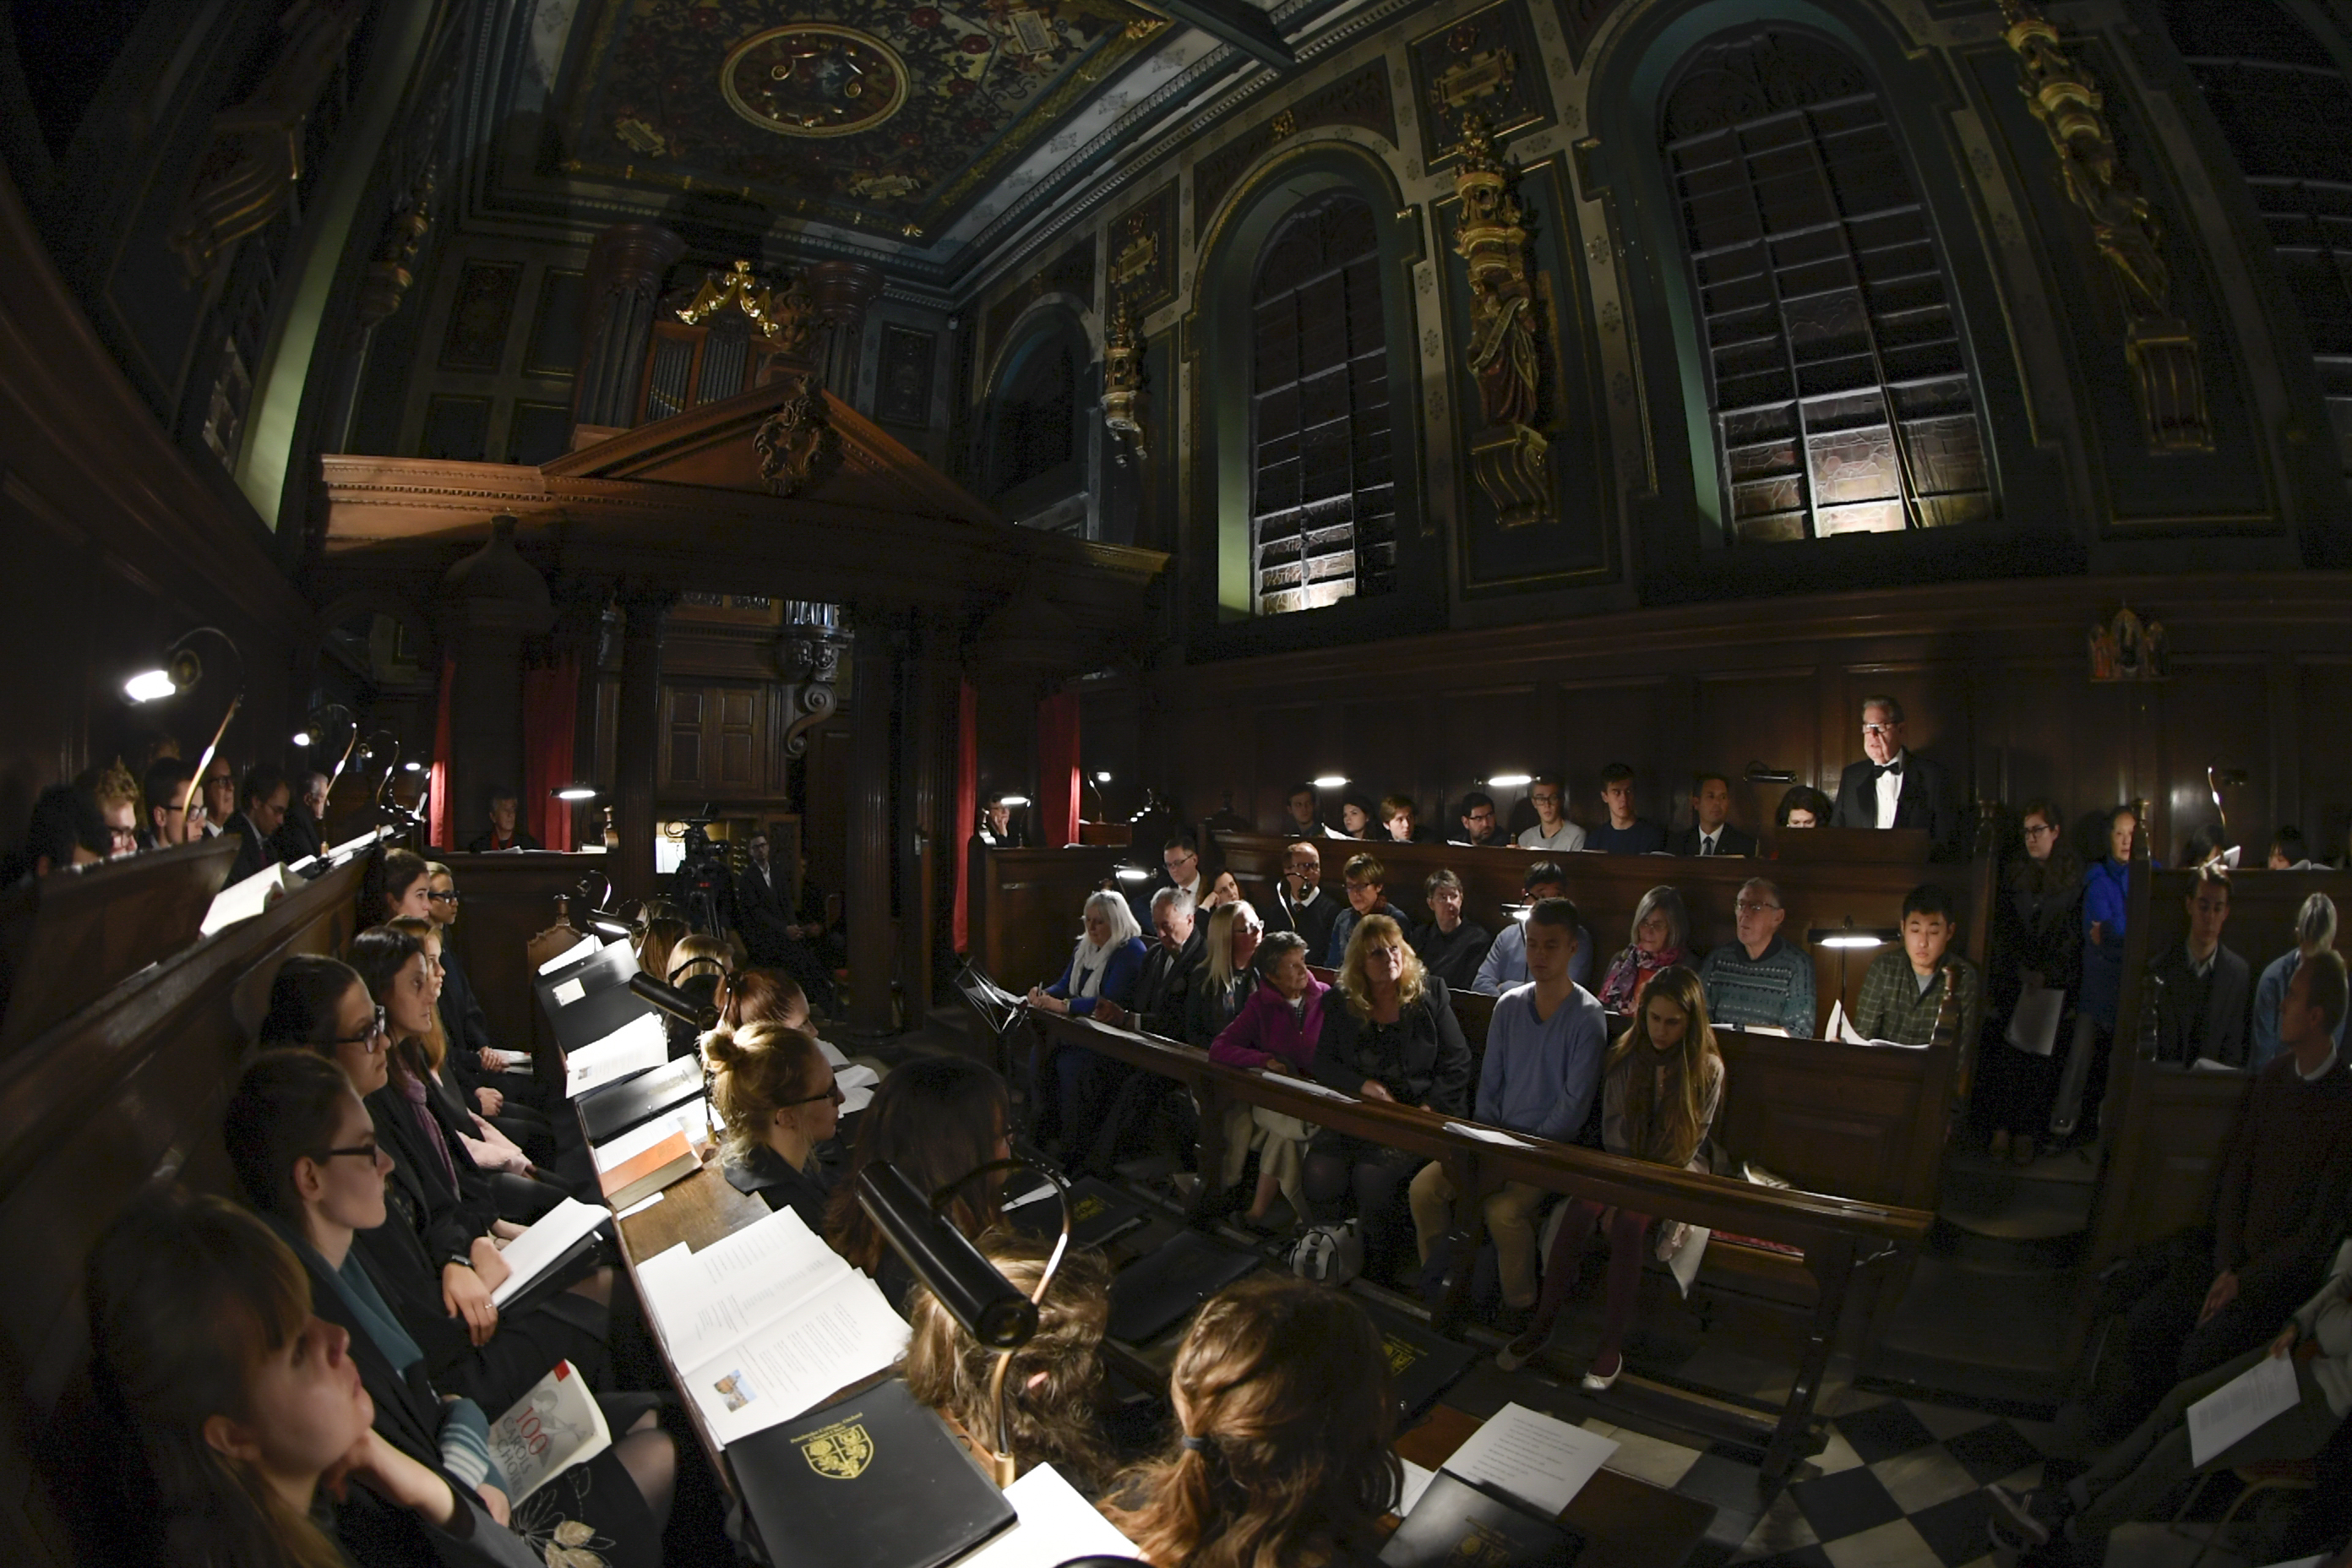 """Elder Jeffrey R. Holland of the Quorum of the Twelve Apostles speaks during the traditional Church of England """"Nine Lessons and Carols"""" service in the Pembroke College Chapel in Oxford, England, on Sunday, Nov. 25, 2018."""